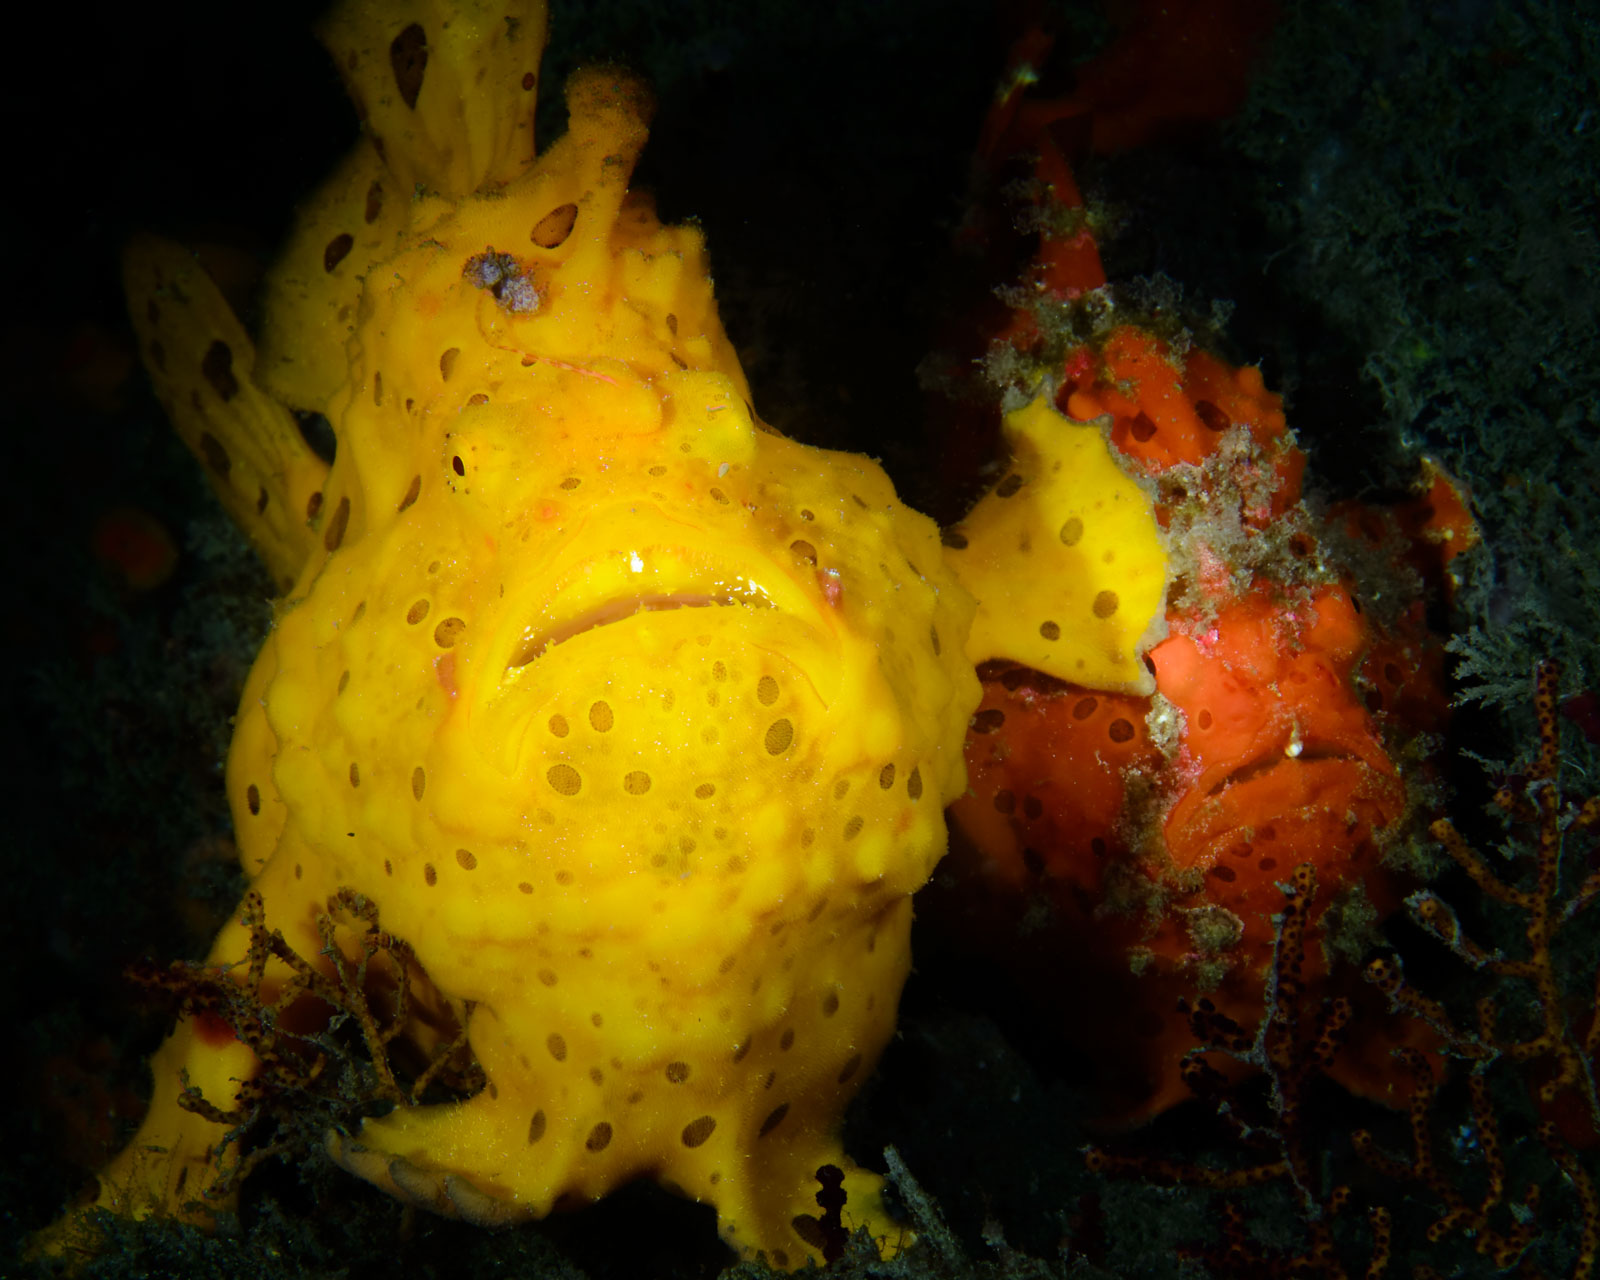 Jim Chen won the Underwater category with these frogfish.